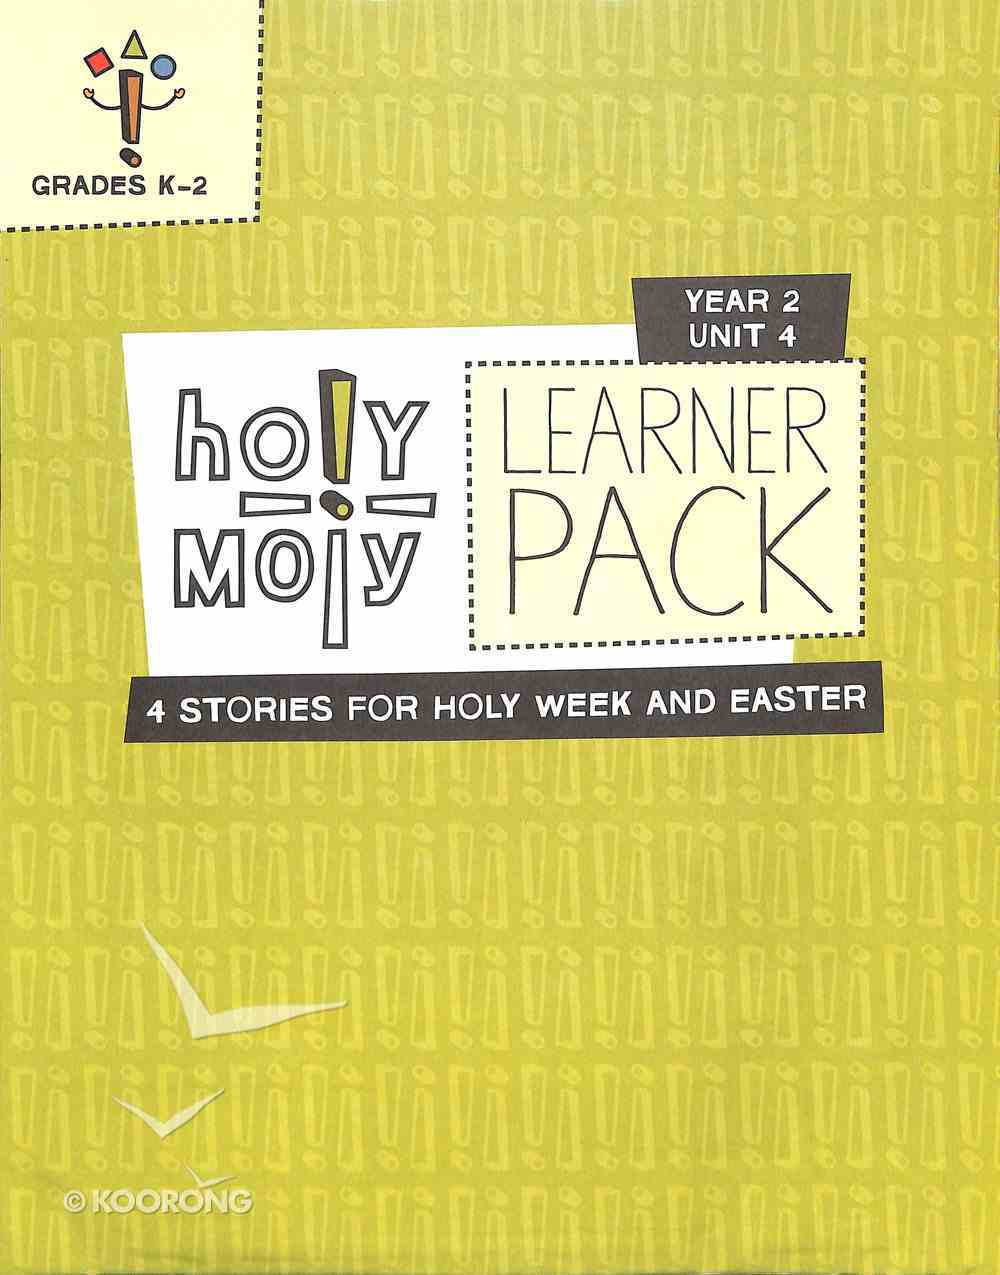 Hmoly Year 2 Unit 4 Grades K-2 (Learner Pack) (Holy Moly Series) Pack